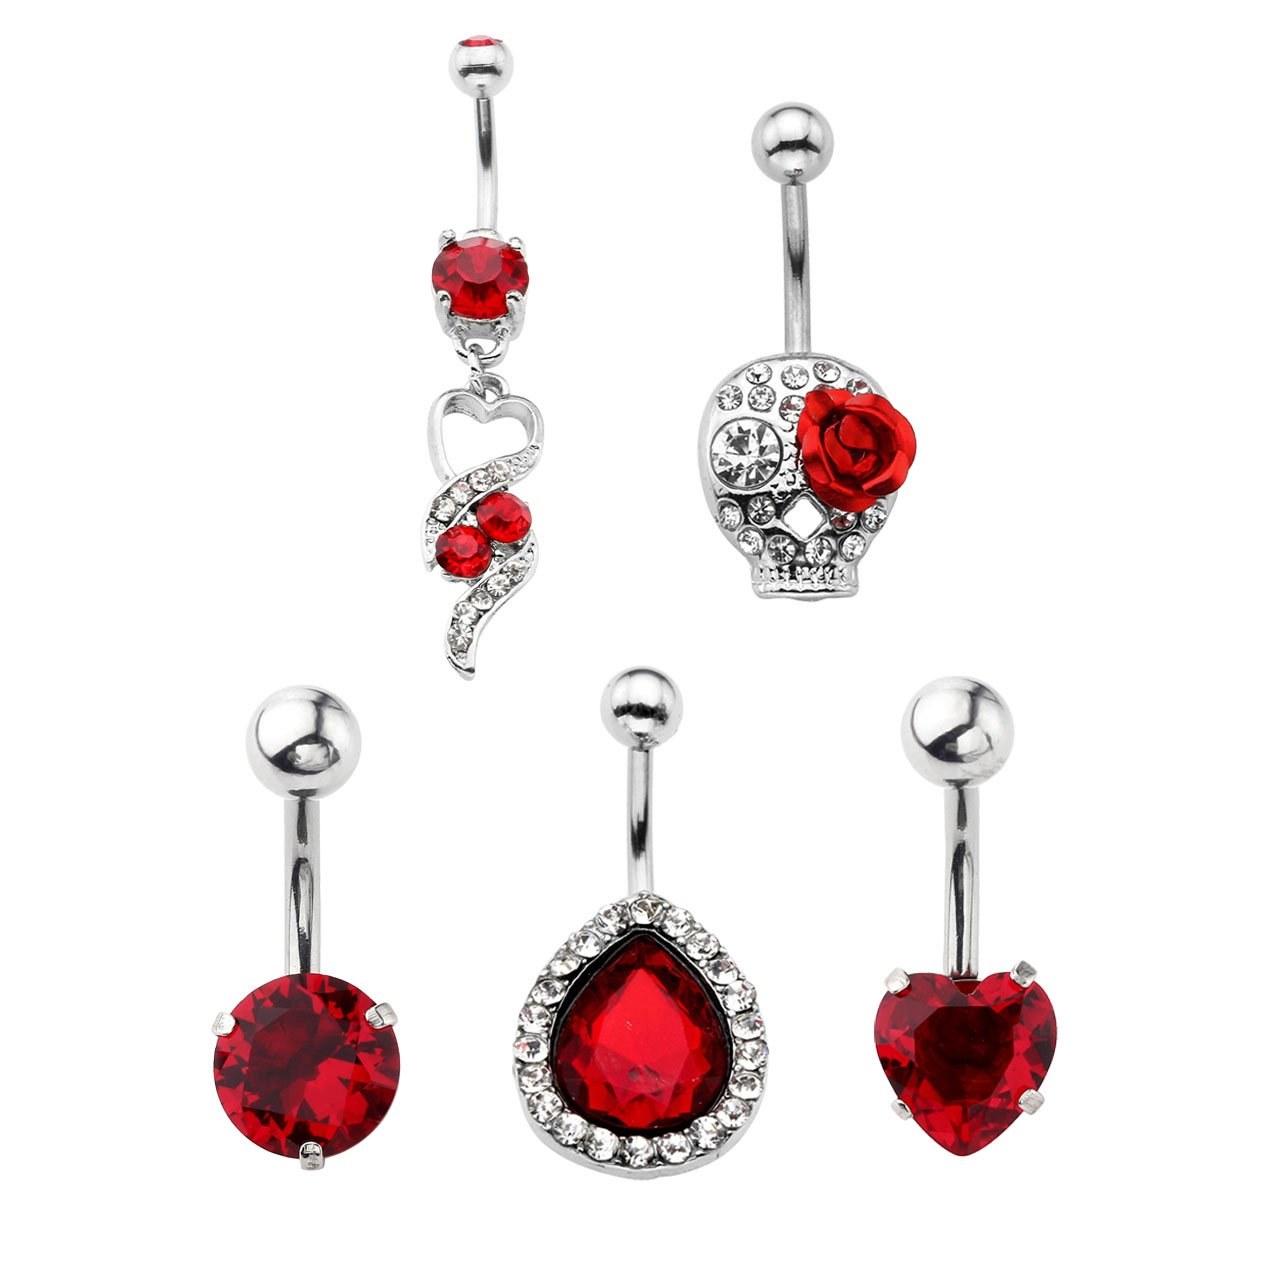 Jovivi 5pcs 14G Stainless Steel Belly Button Rings Dangle Bar Jewelry Set, with Gift Box by Jovivi